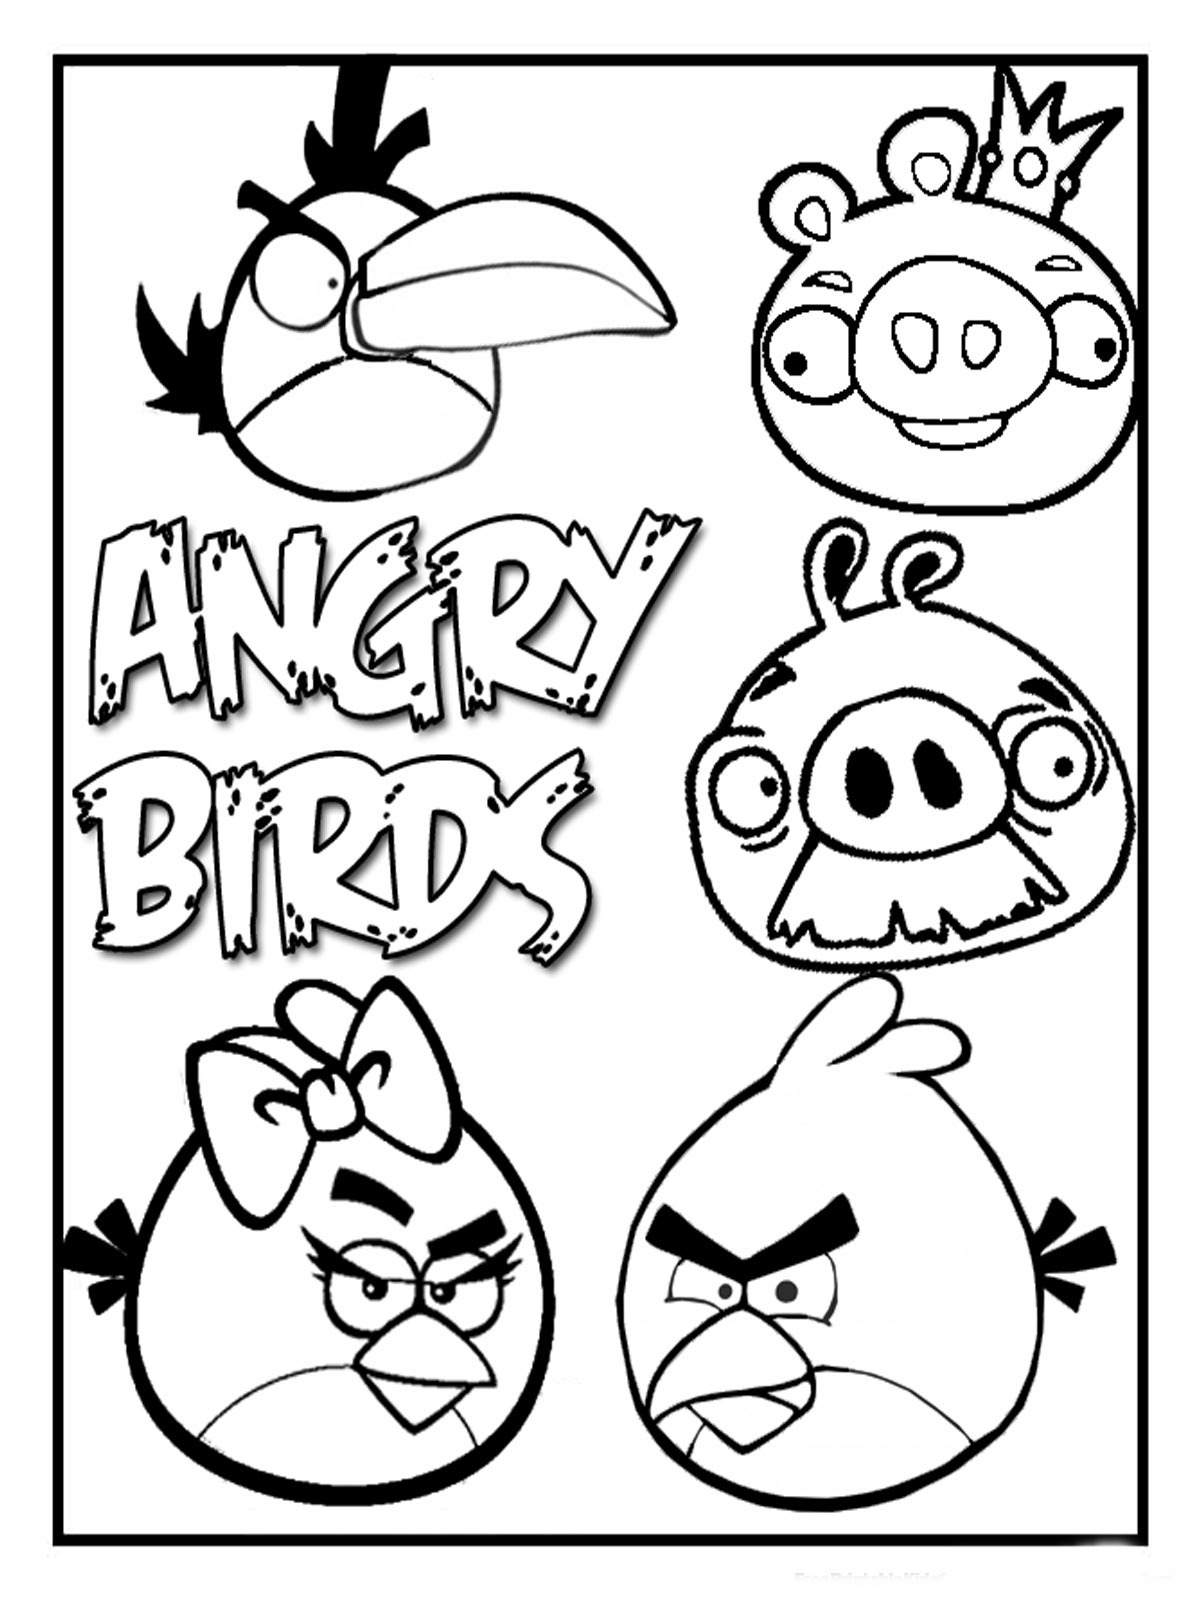 Angry Birds Coloring Pages For